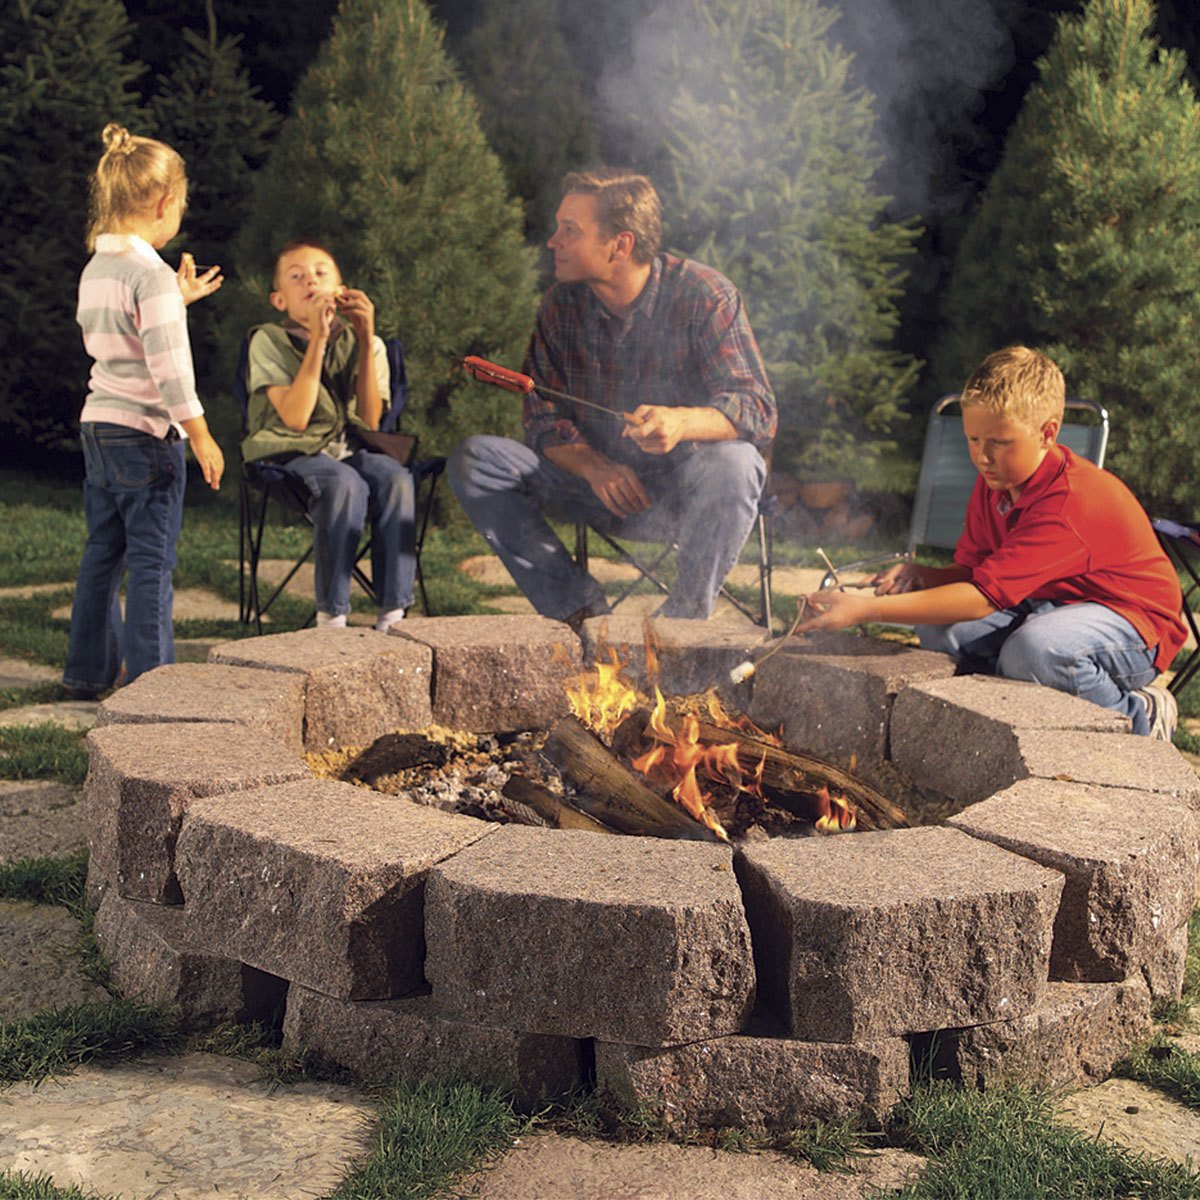 12 Great Backyard Fire Pit Ideas The Family Handyman with 13 Smart Ways How to Craft Backyard Rock Fire Pit Ideas